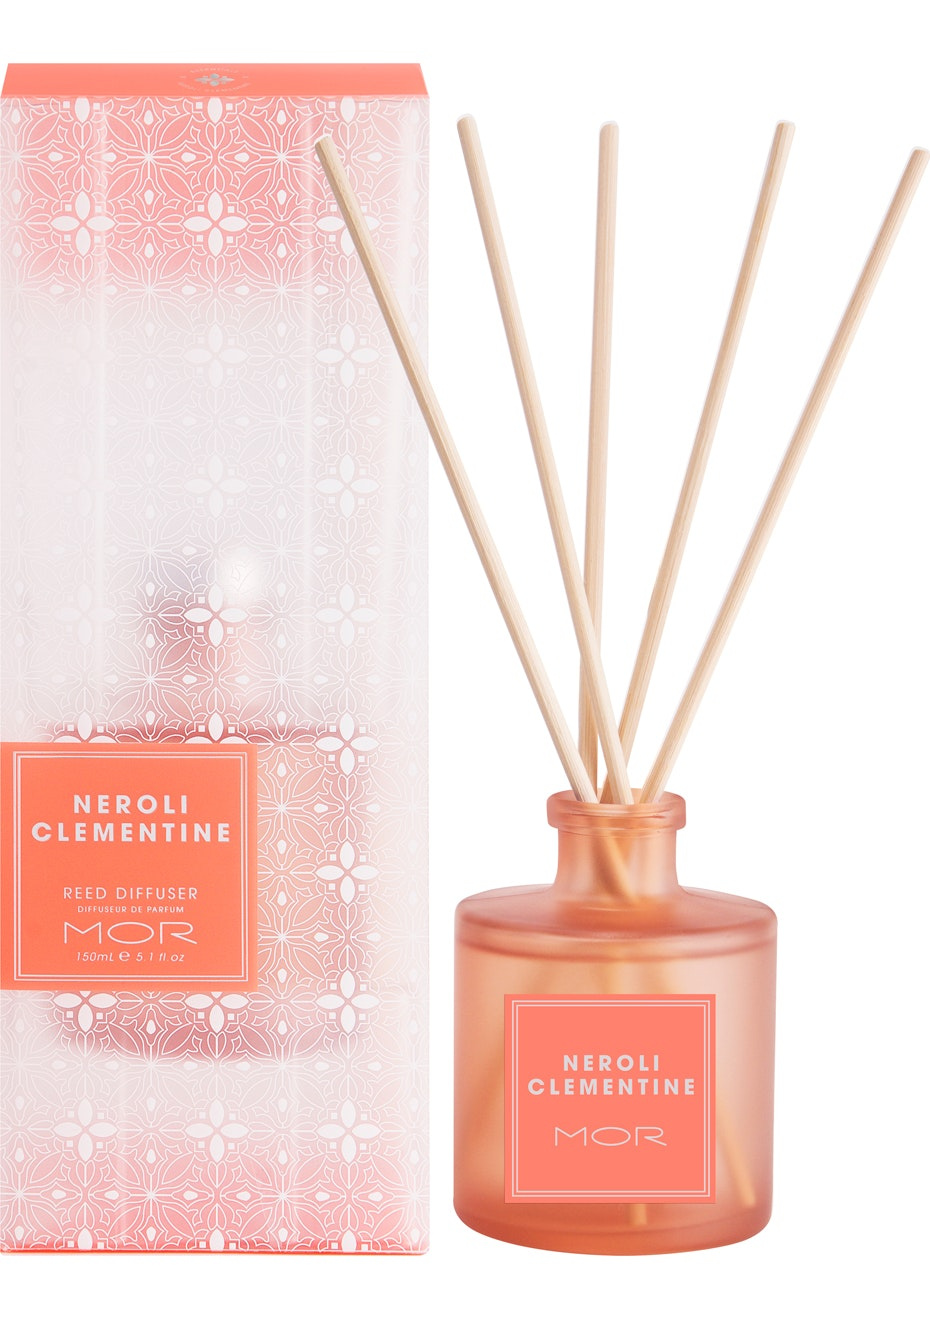 MOR - Reed Diffuser 150ml Neroli Clementine